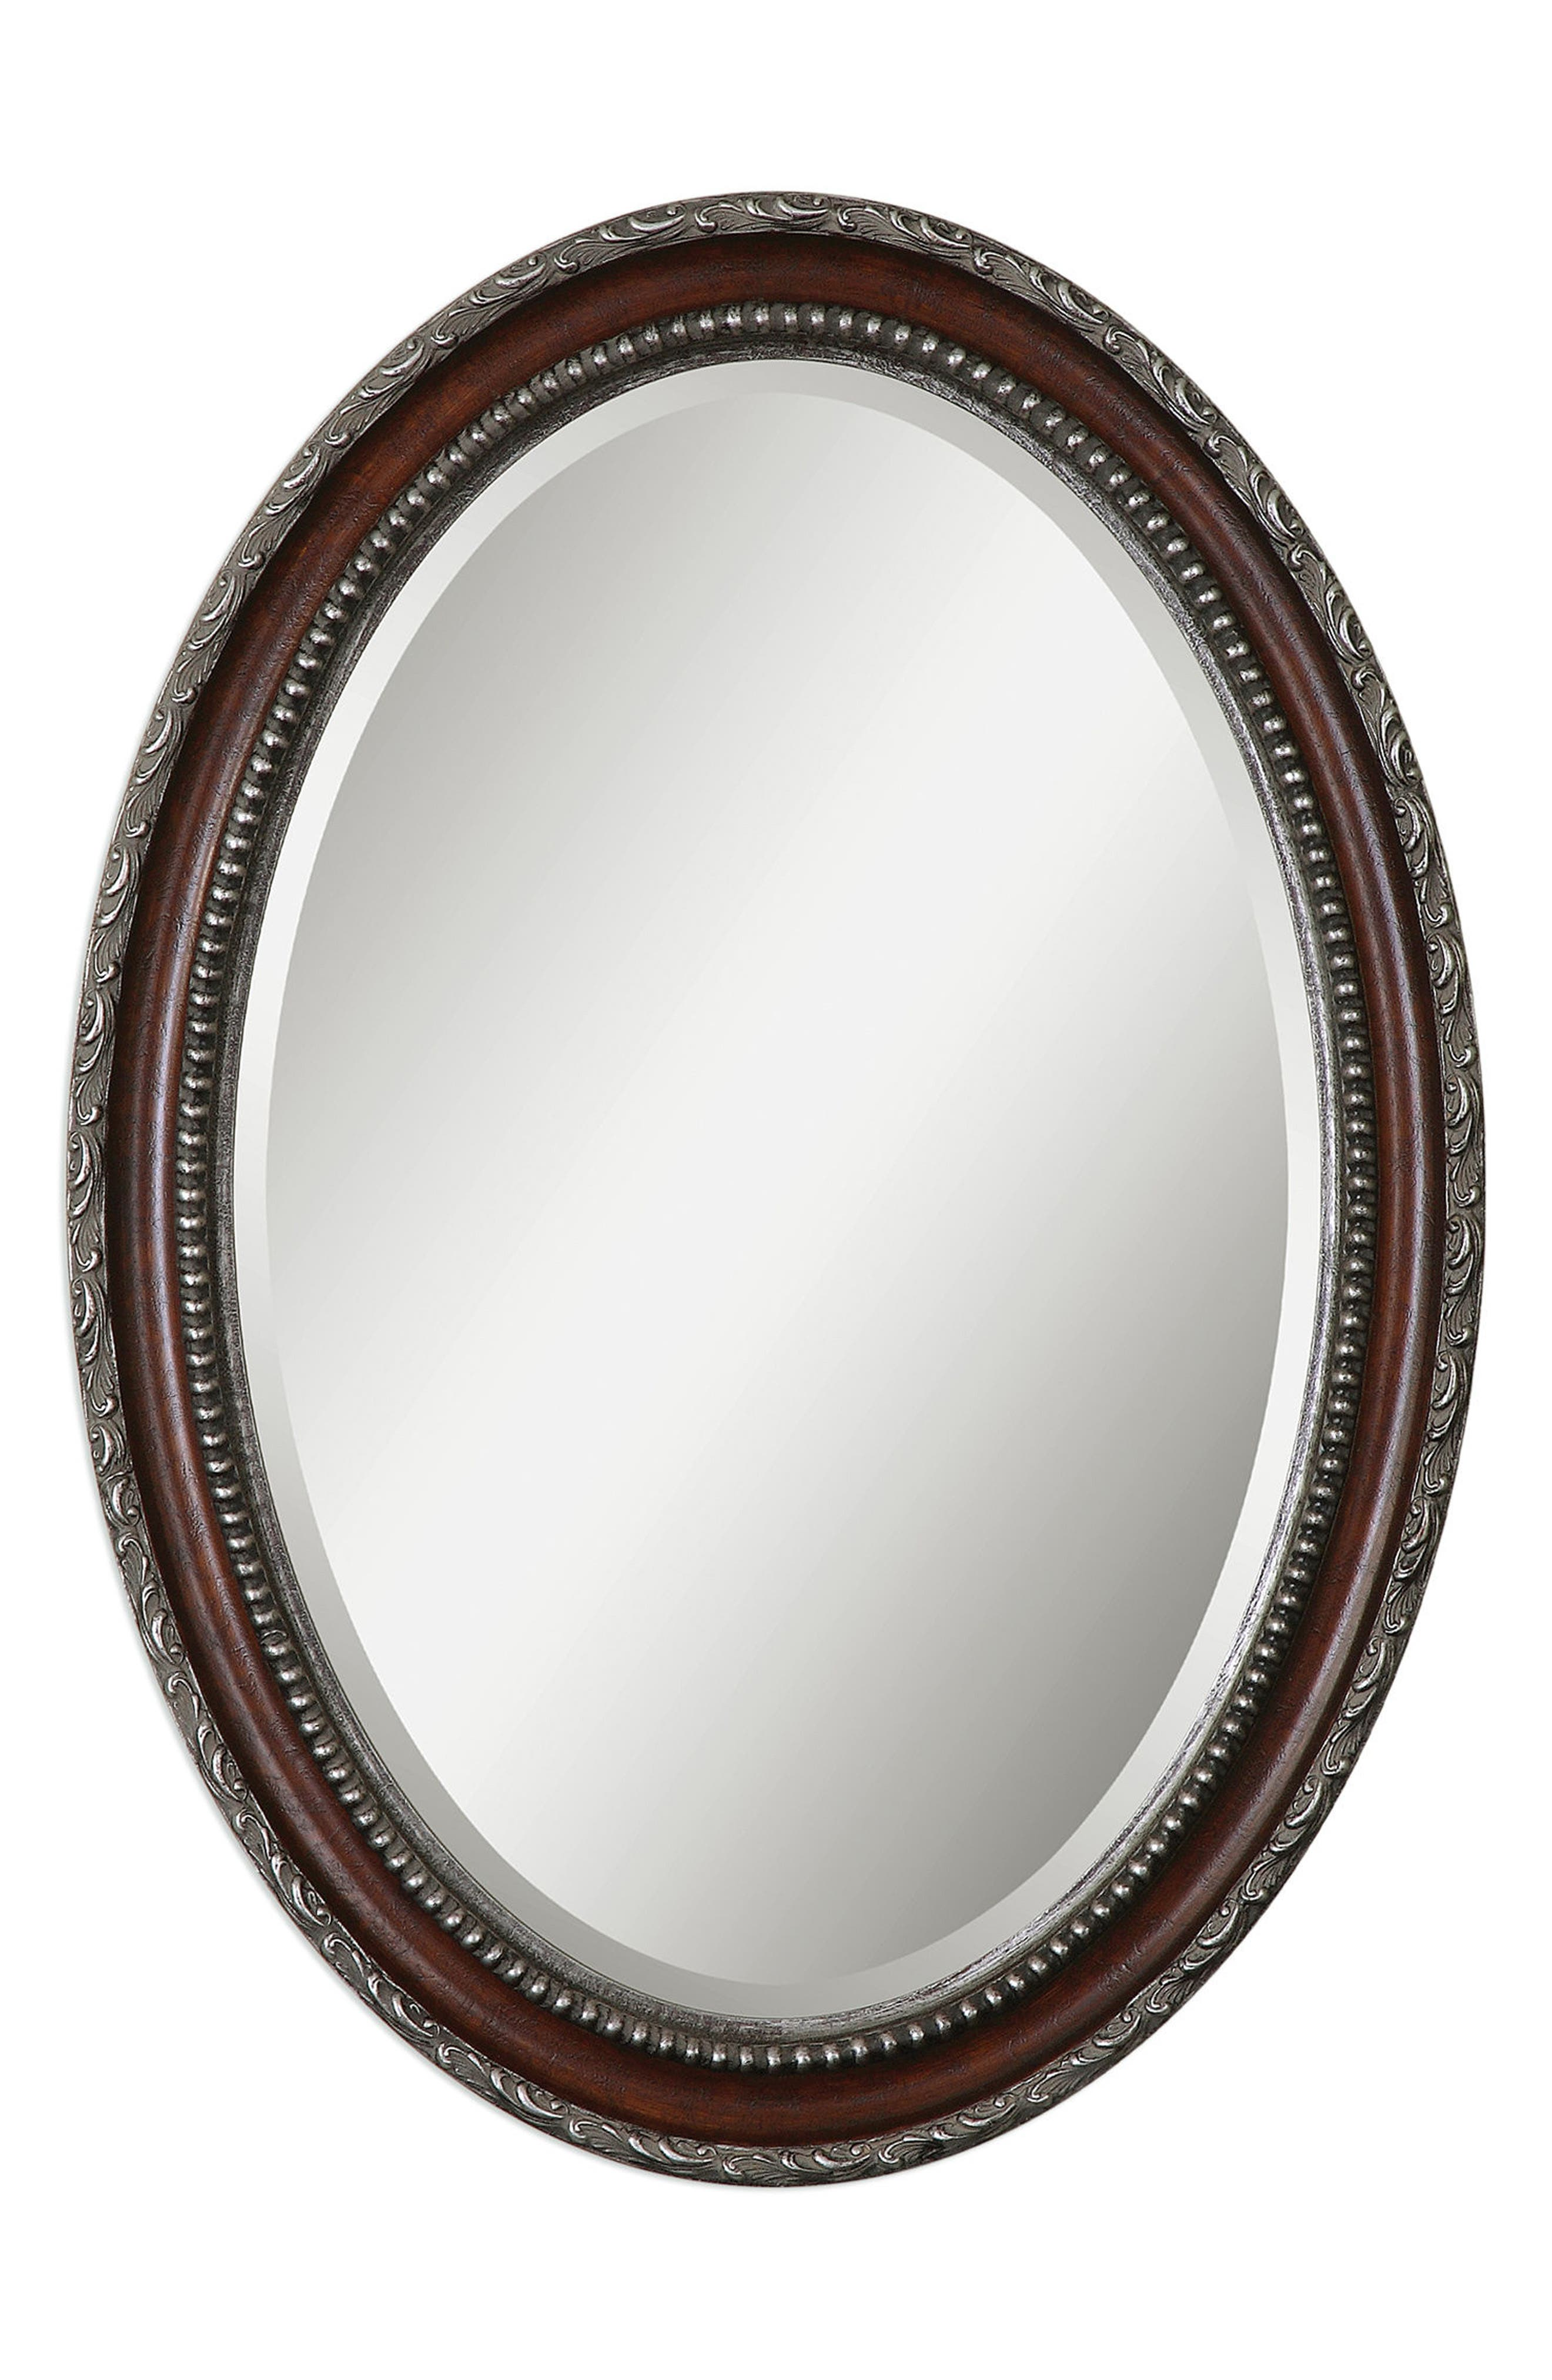 Montrose Oval Wall Mirror,                             Main thumbnail 1, color,                             Brown